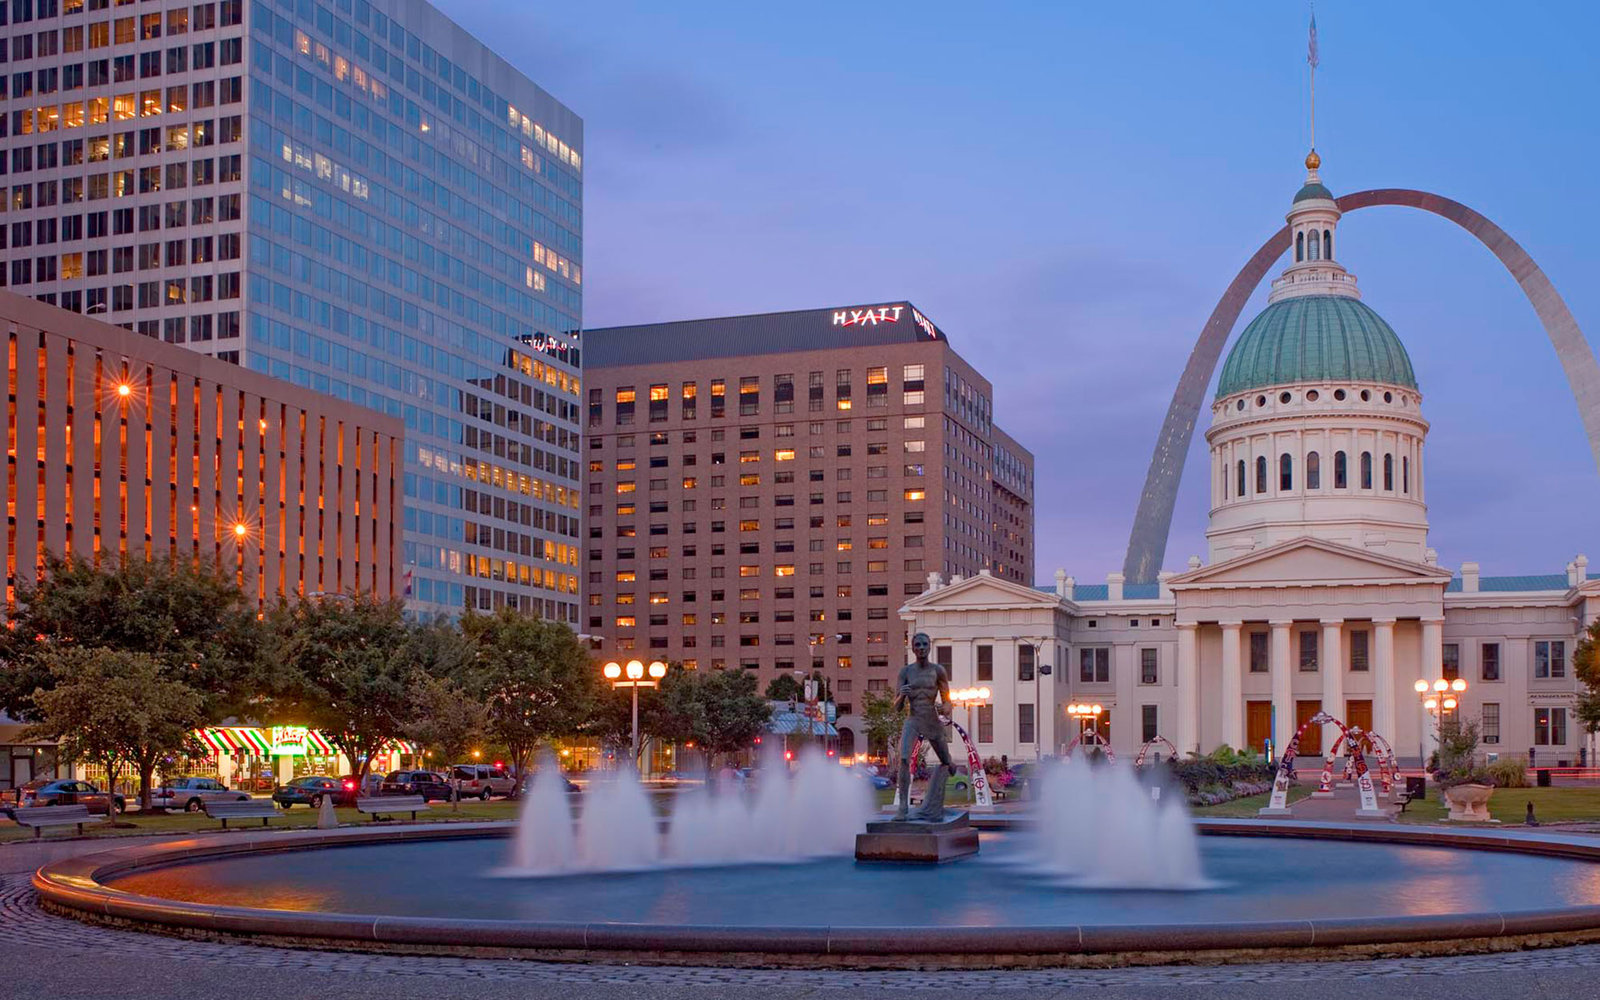 Missouri: Hyatt Regency St. Louis at The Arch (formerly the Hyatt Regency St. Louis Waterfront)